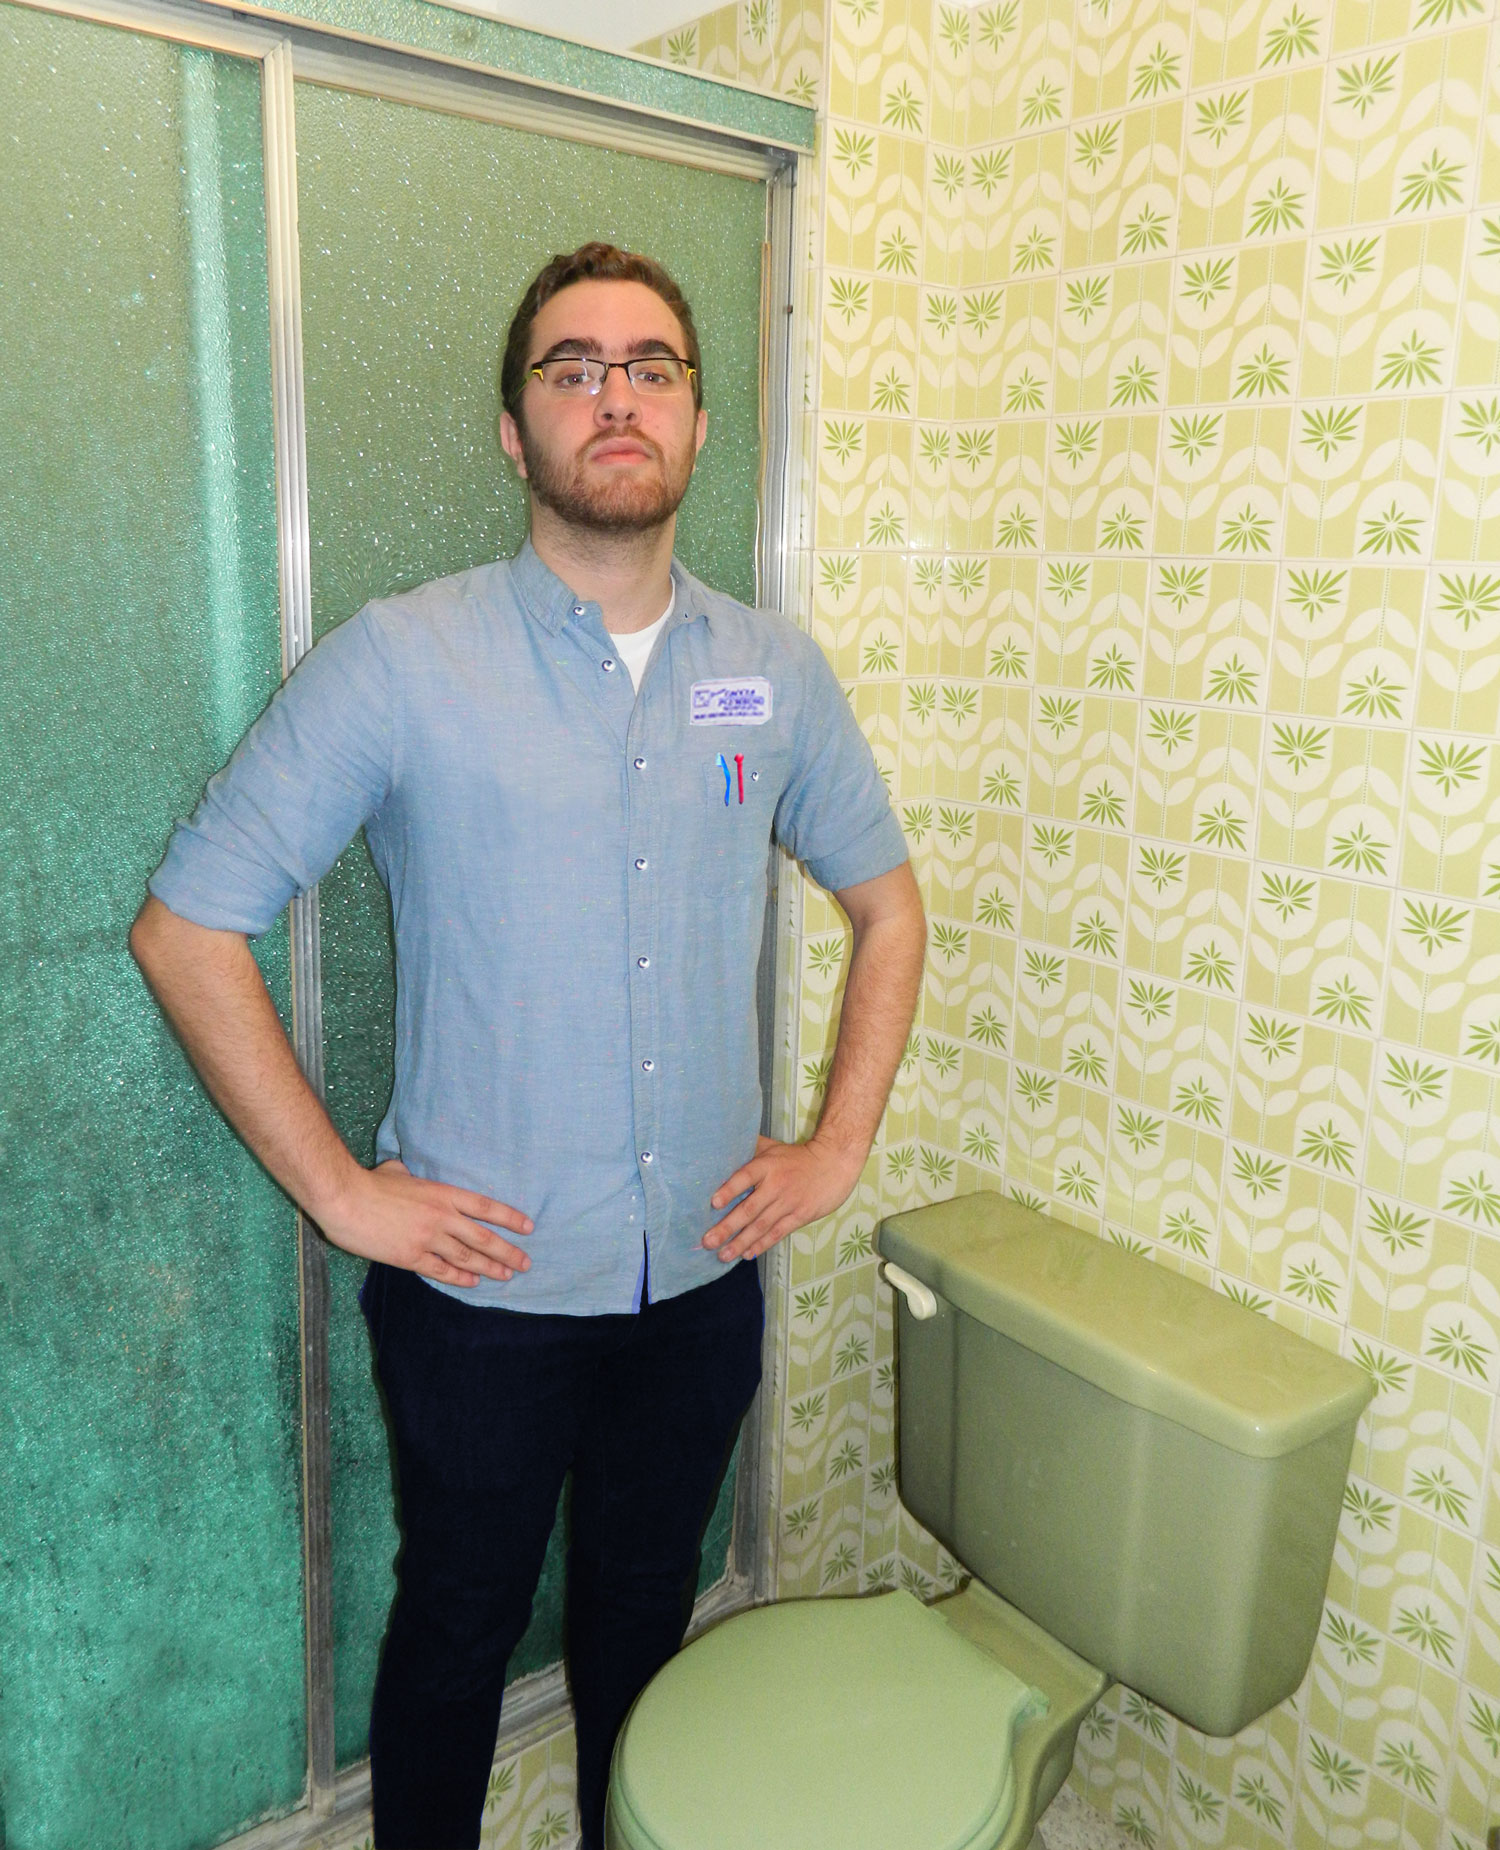 The Best Toilet Manufacturers In The Industry: Finding The top Brands